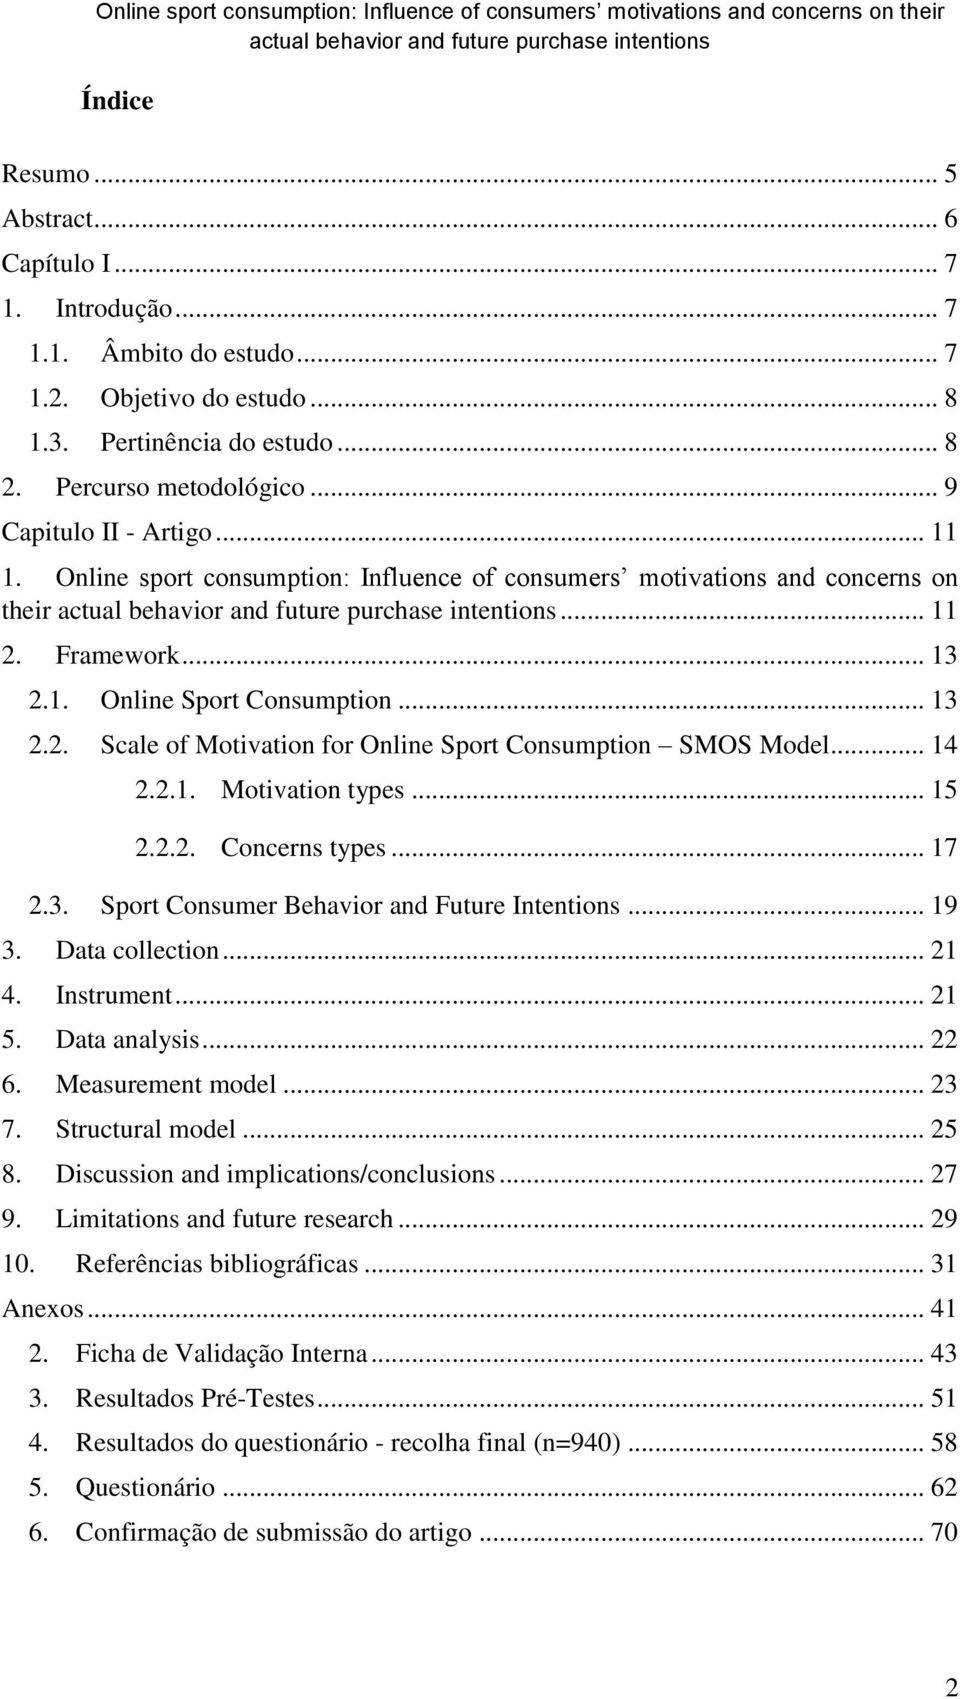 .. 14 2.2.1. Motivation types... 15 2.2.2. Concerns types... 17 2.3. Sport Consumer Behavior and Future Intentions... 19 3. Data collection... 21 4. Instrument... 21 5. Data analysis... 22 6.